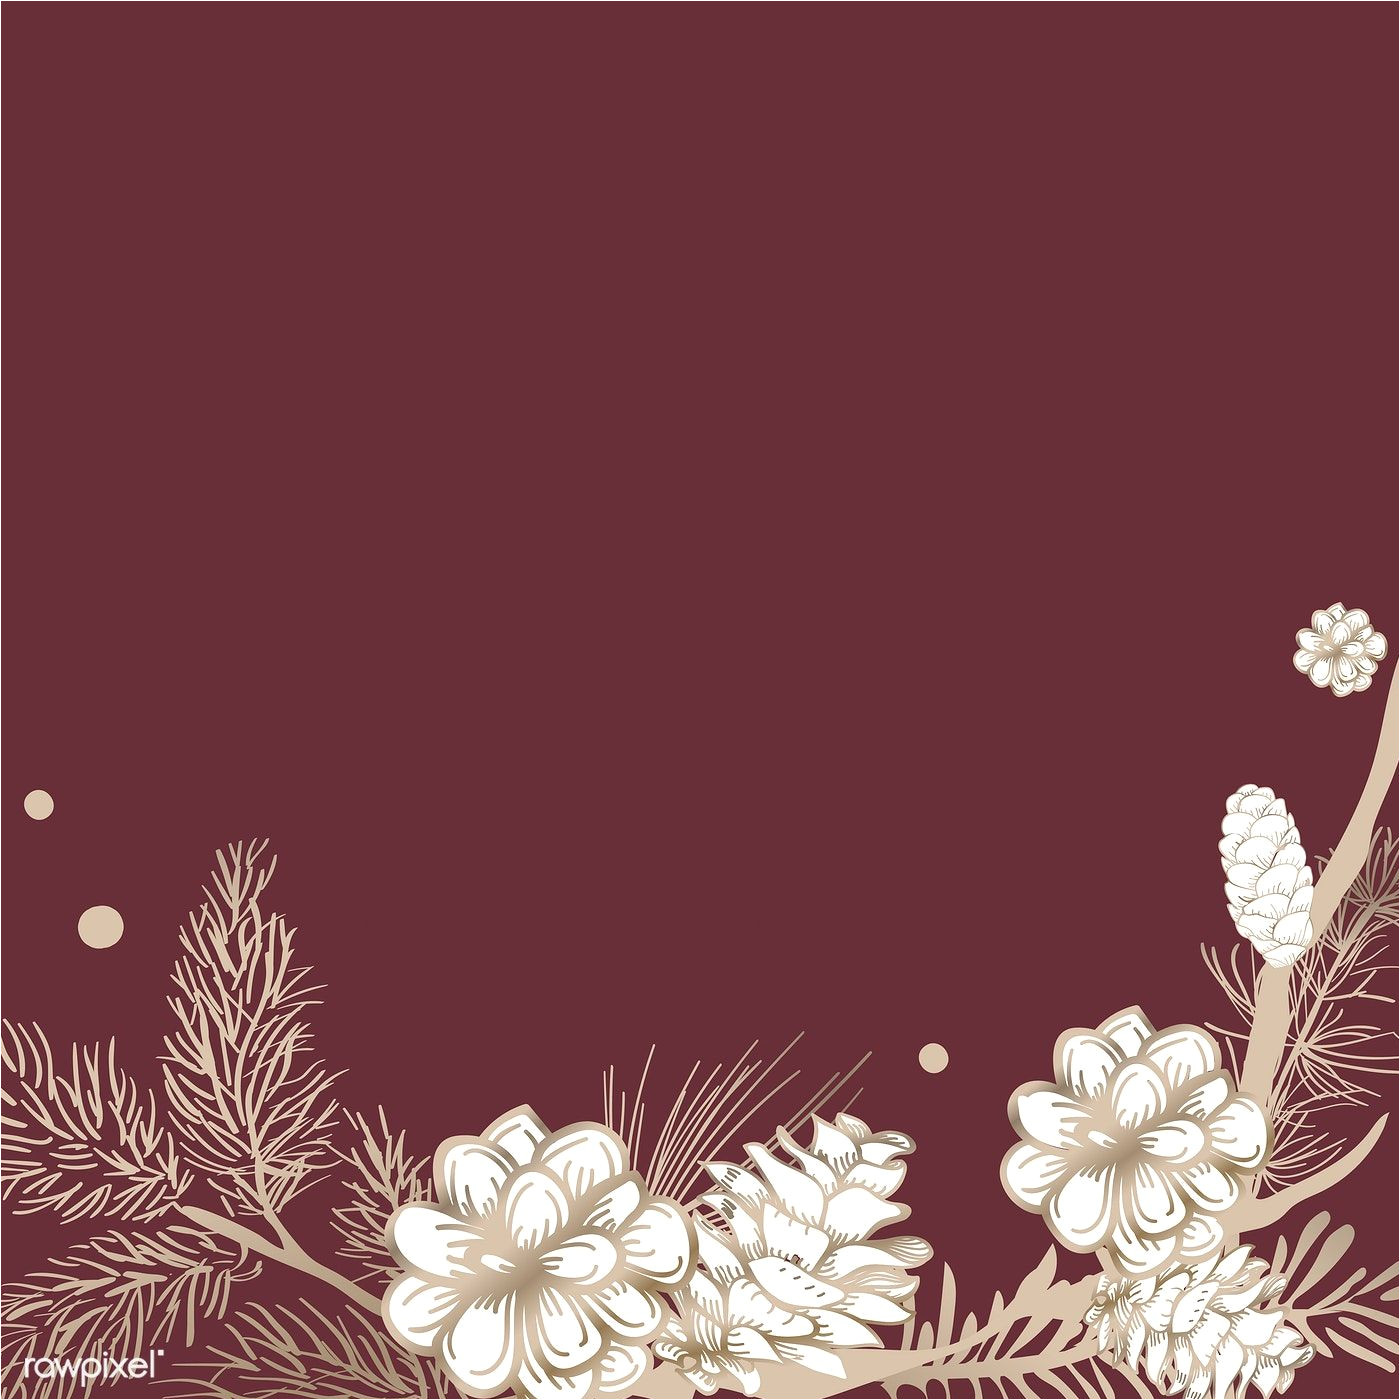 Wedding Invitation Card Red Background Design Floral Framed Wedding Invitation Vector Free Image by